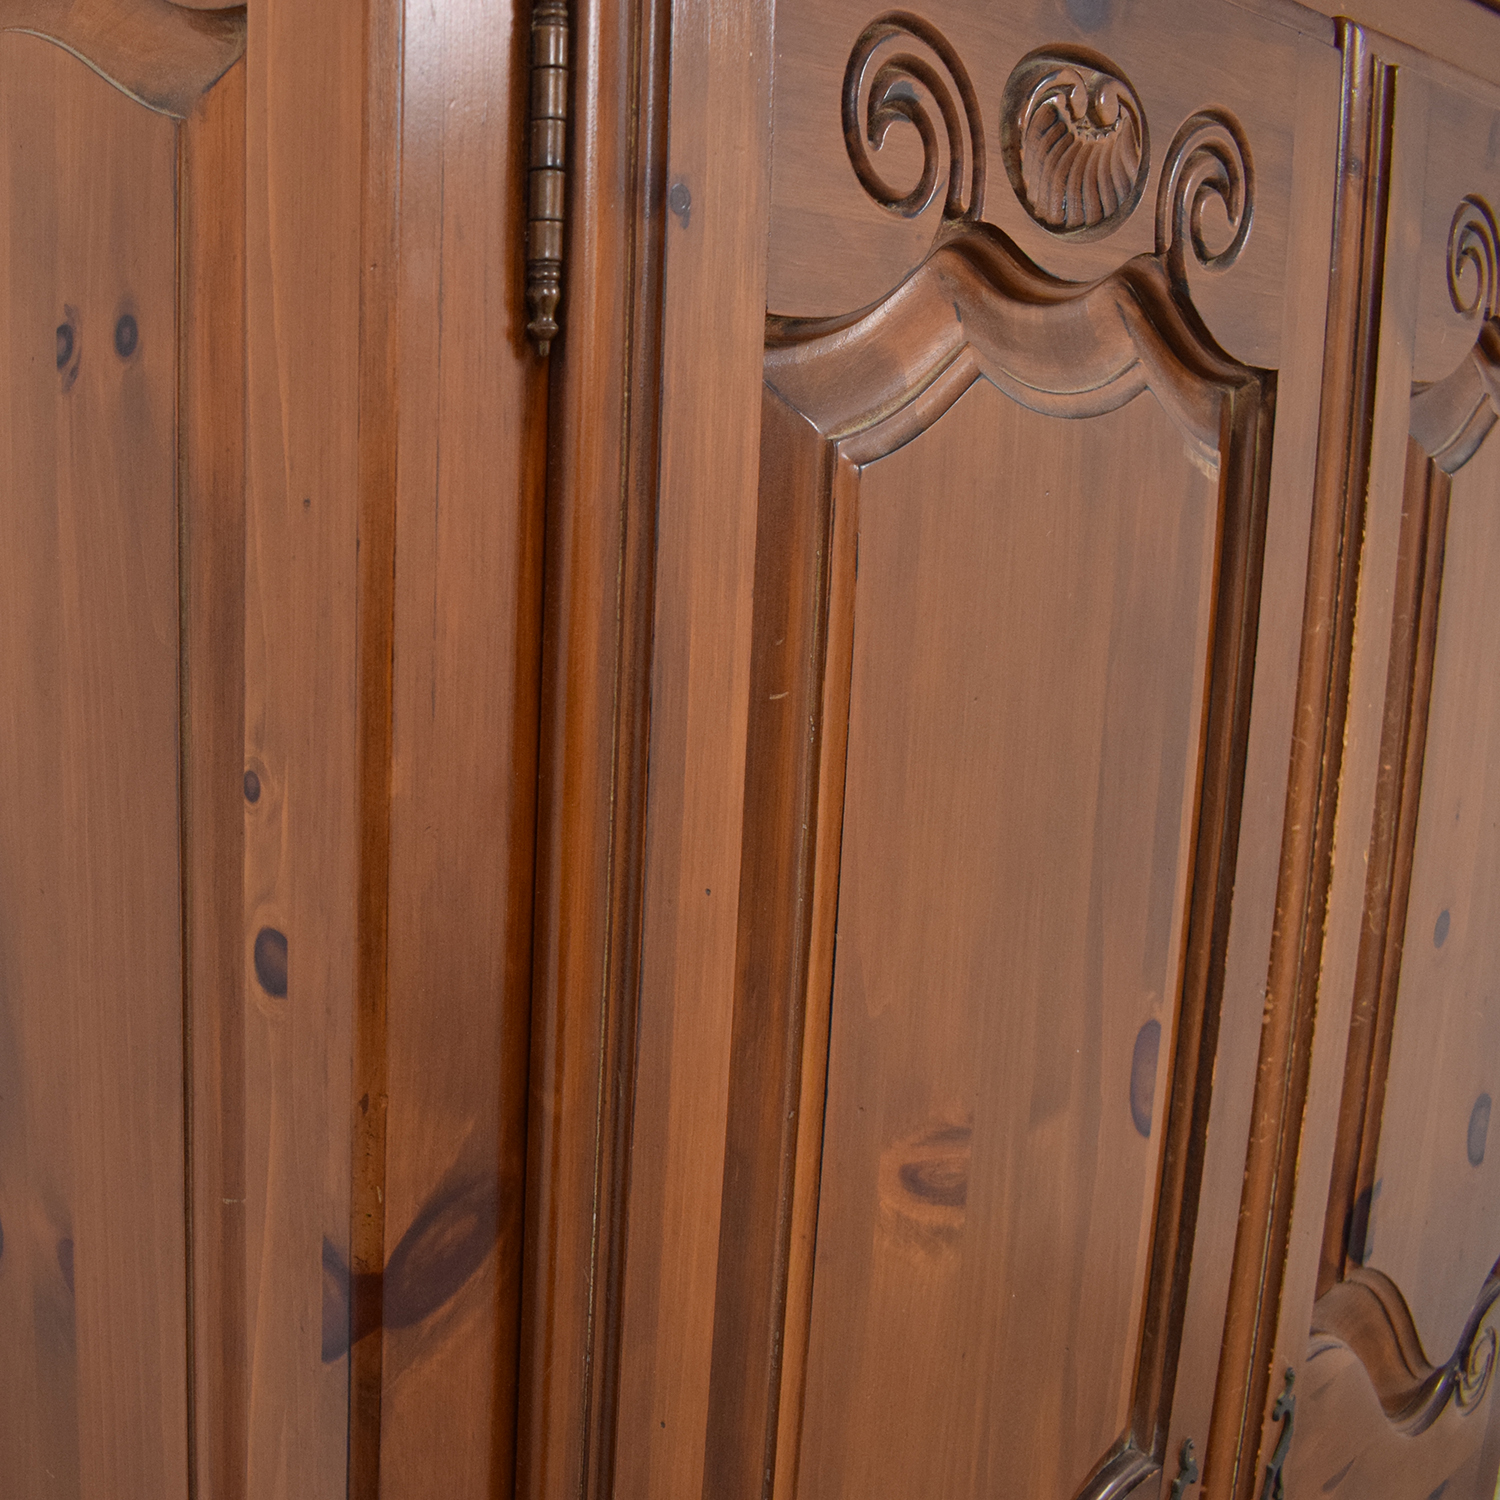 Ethan Allen Ethan Allen Country French Armoire brown